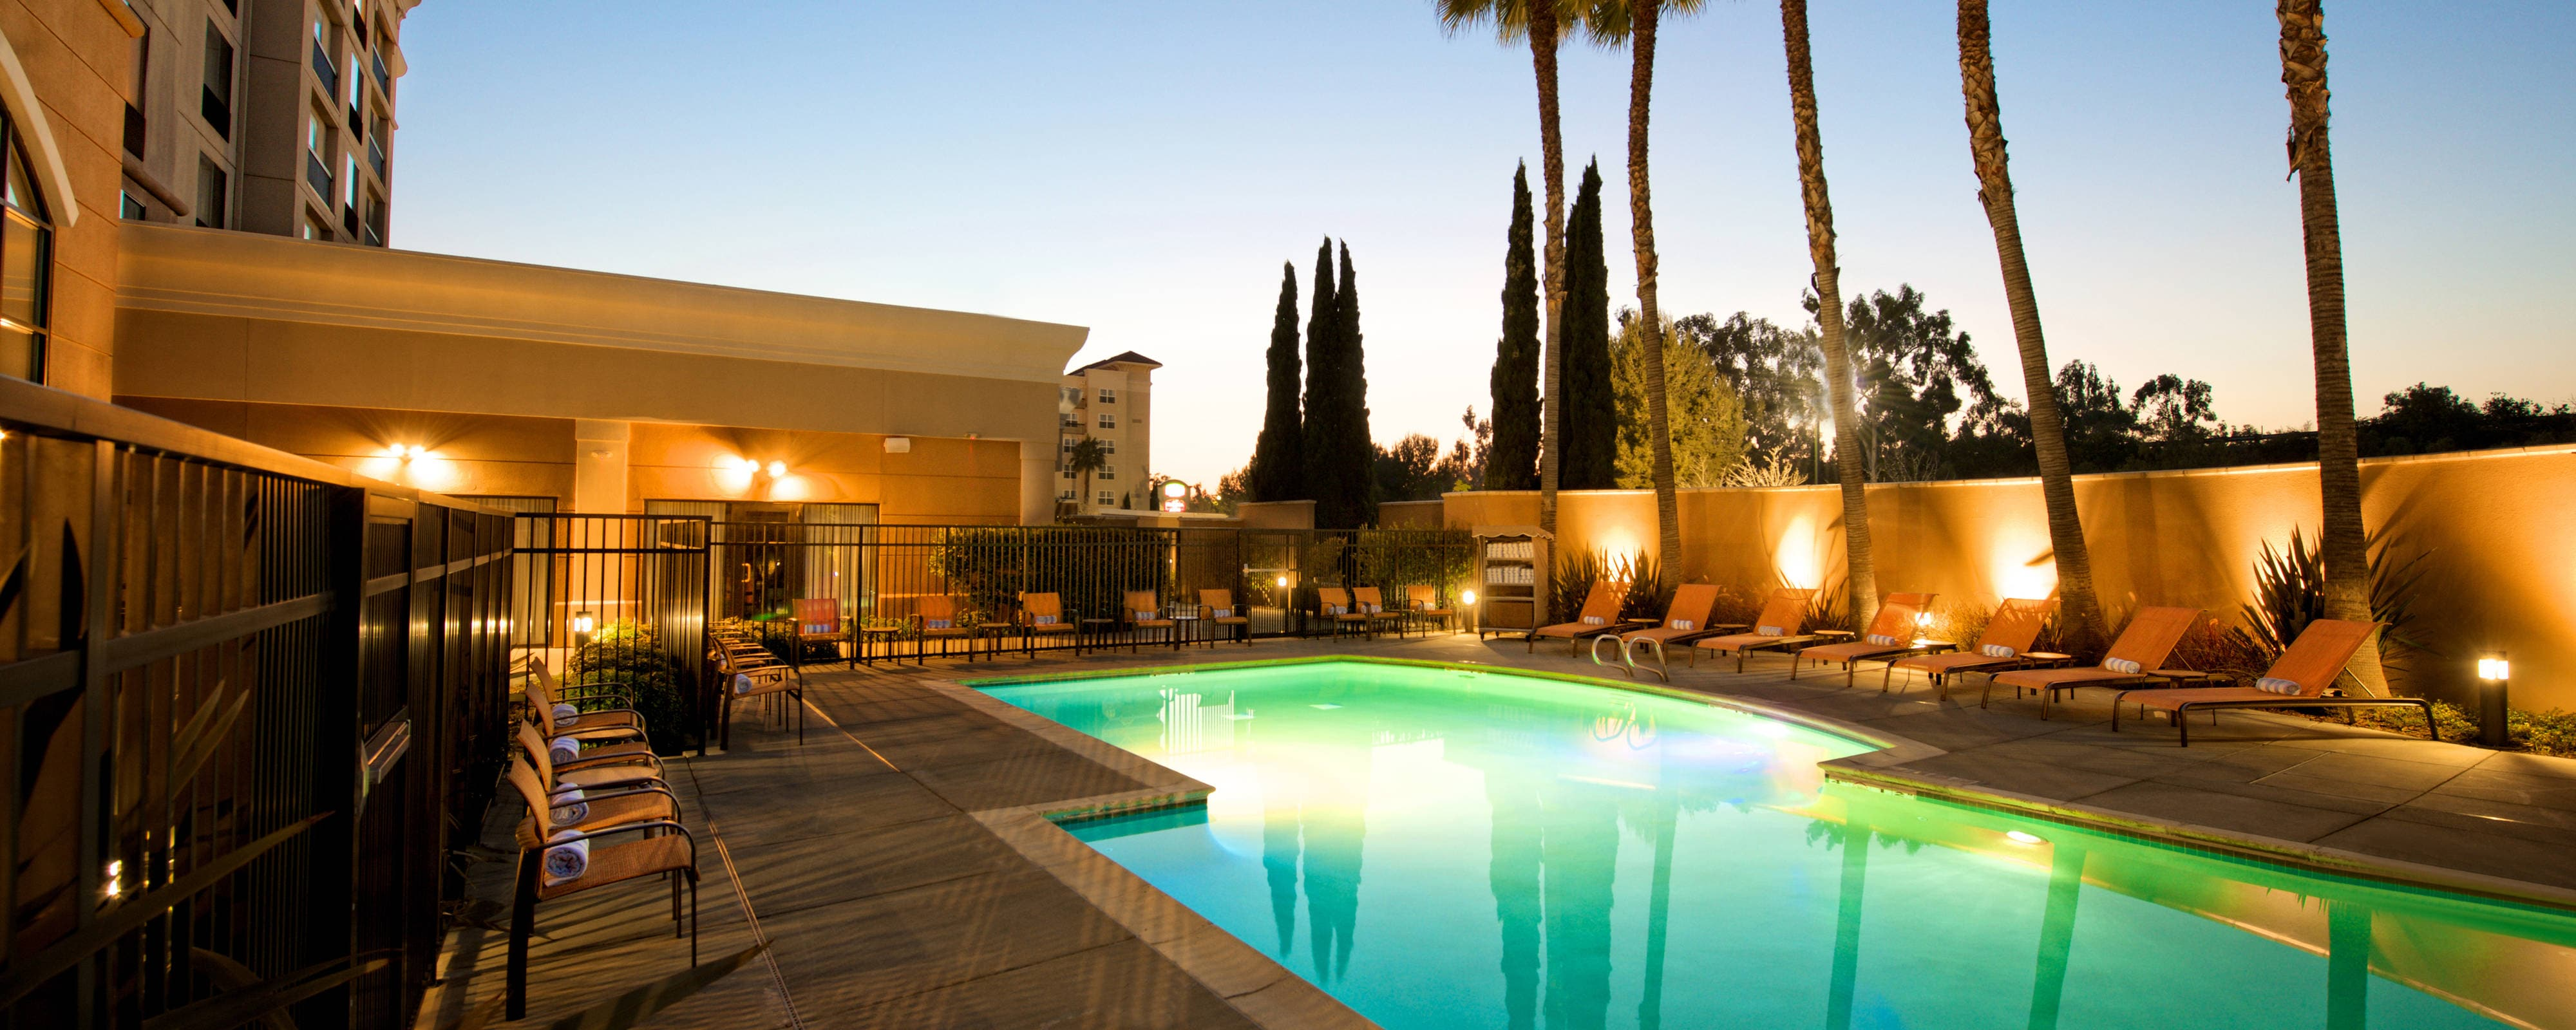 Hotel mit Pool in Newark, CA